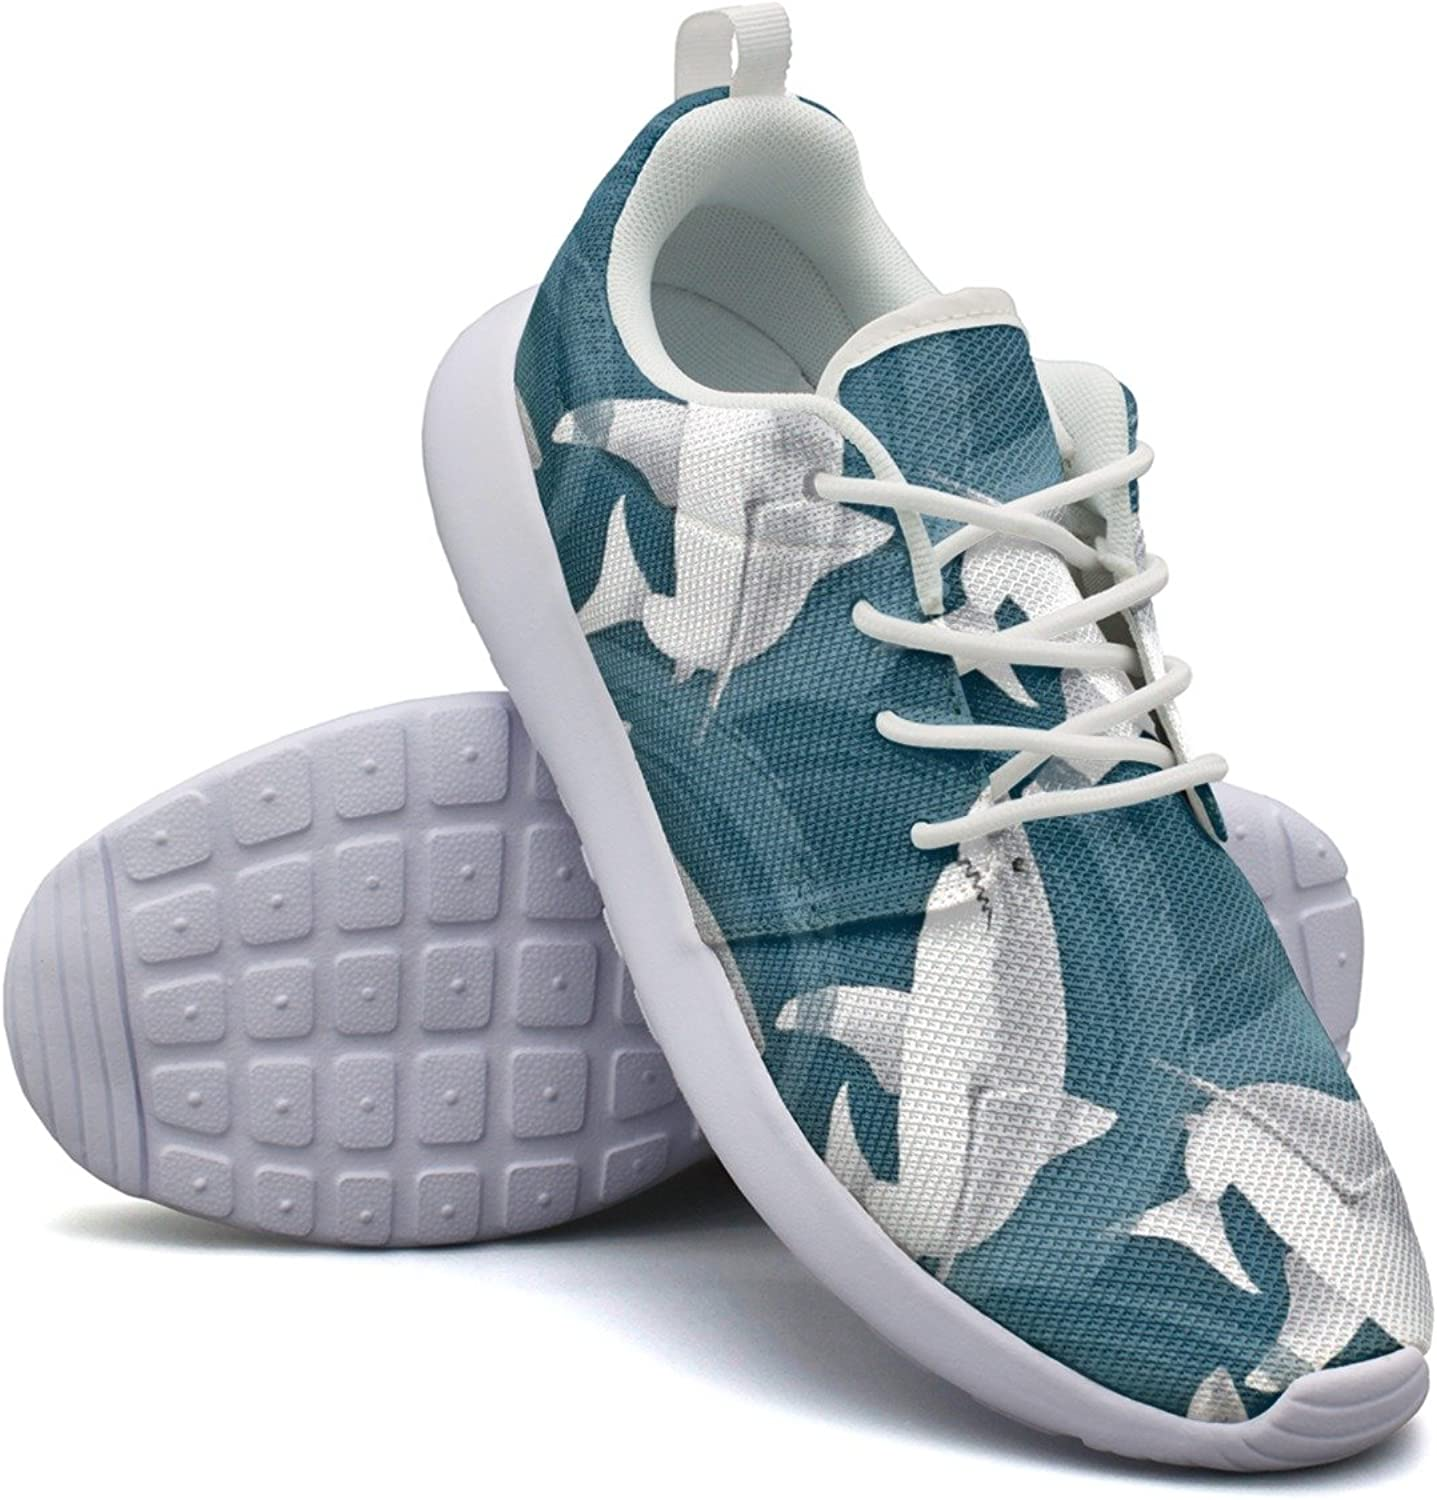 Sharks In The Waves Womans Neutral Design Running shoes Funny Active